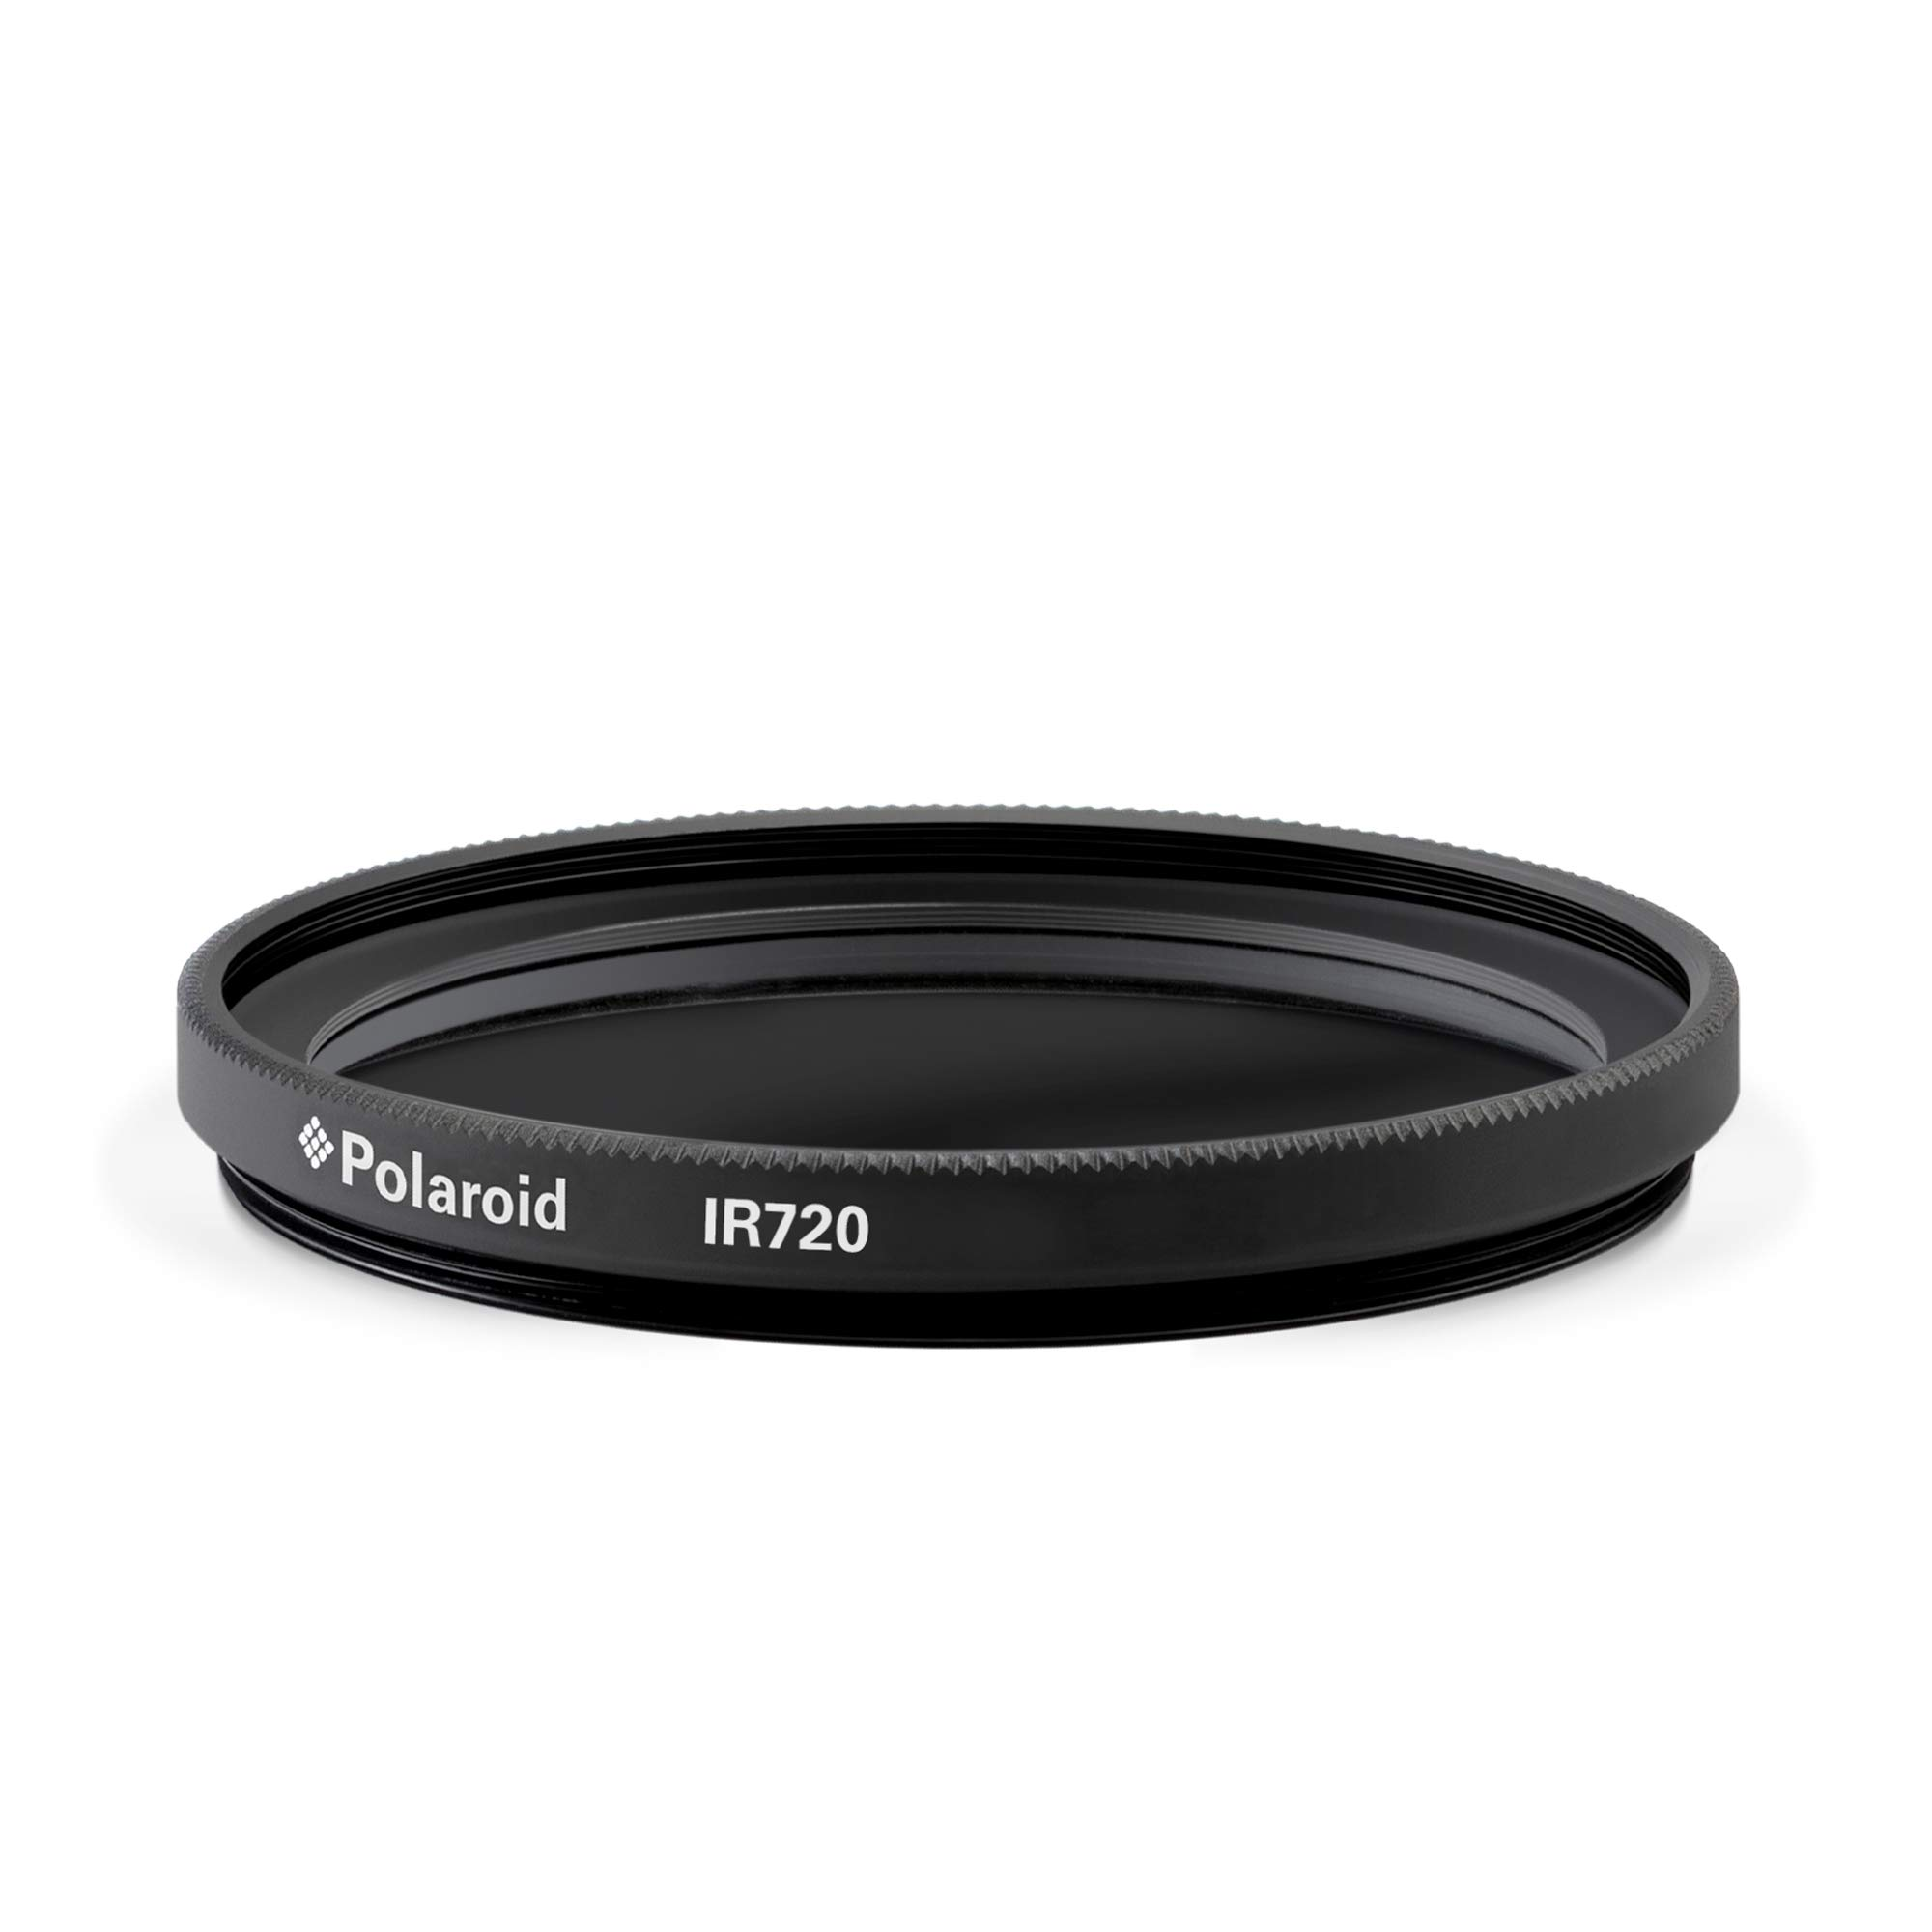 Polaroid Optics 58mm Infrared Filter [X-Ray Effect] – IR720 Removes Most Visible Light Below & Above 720nm Wavelength- Compatible w/ All Popular Camera Lens Models